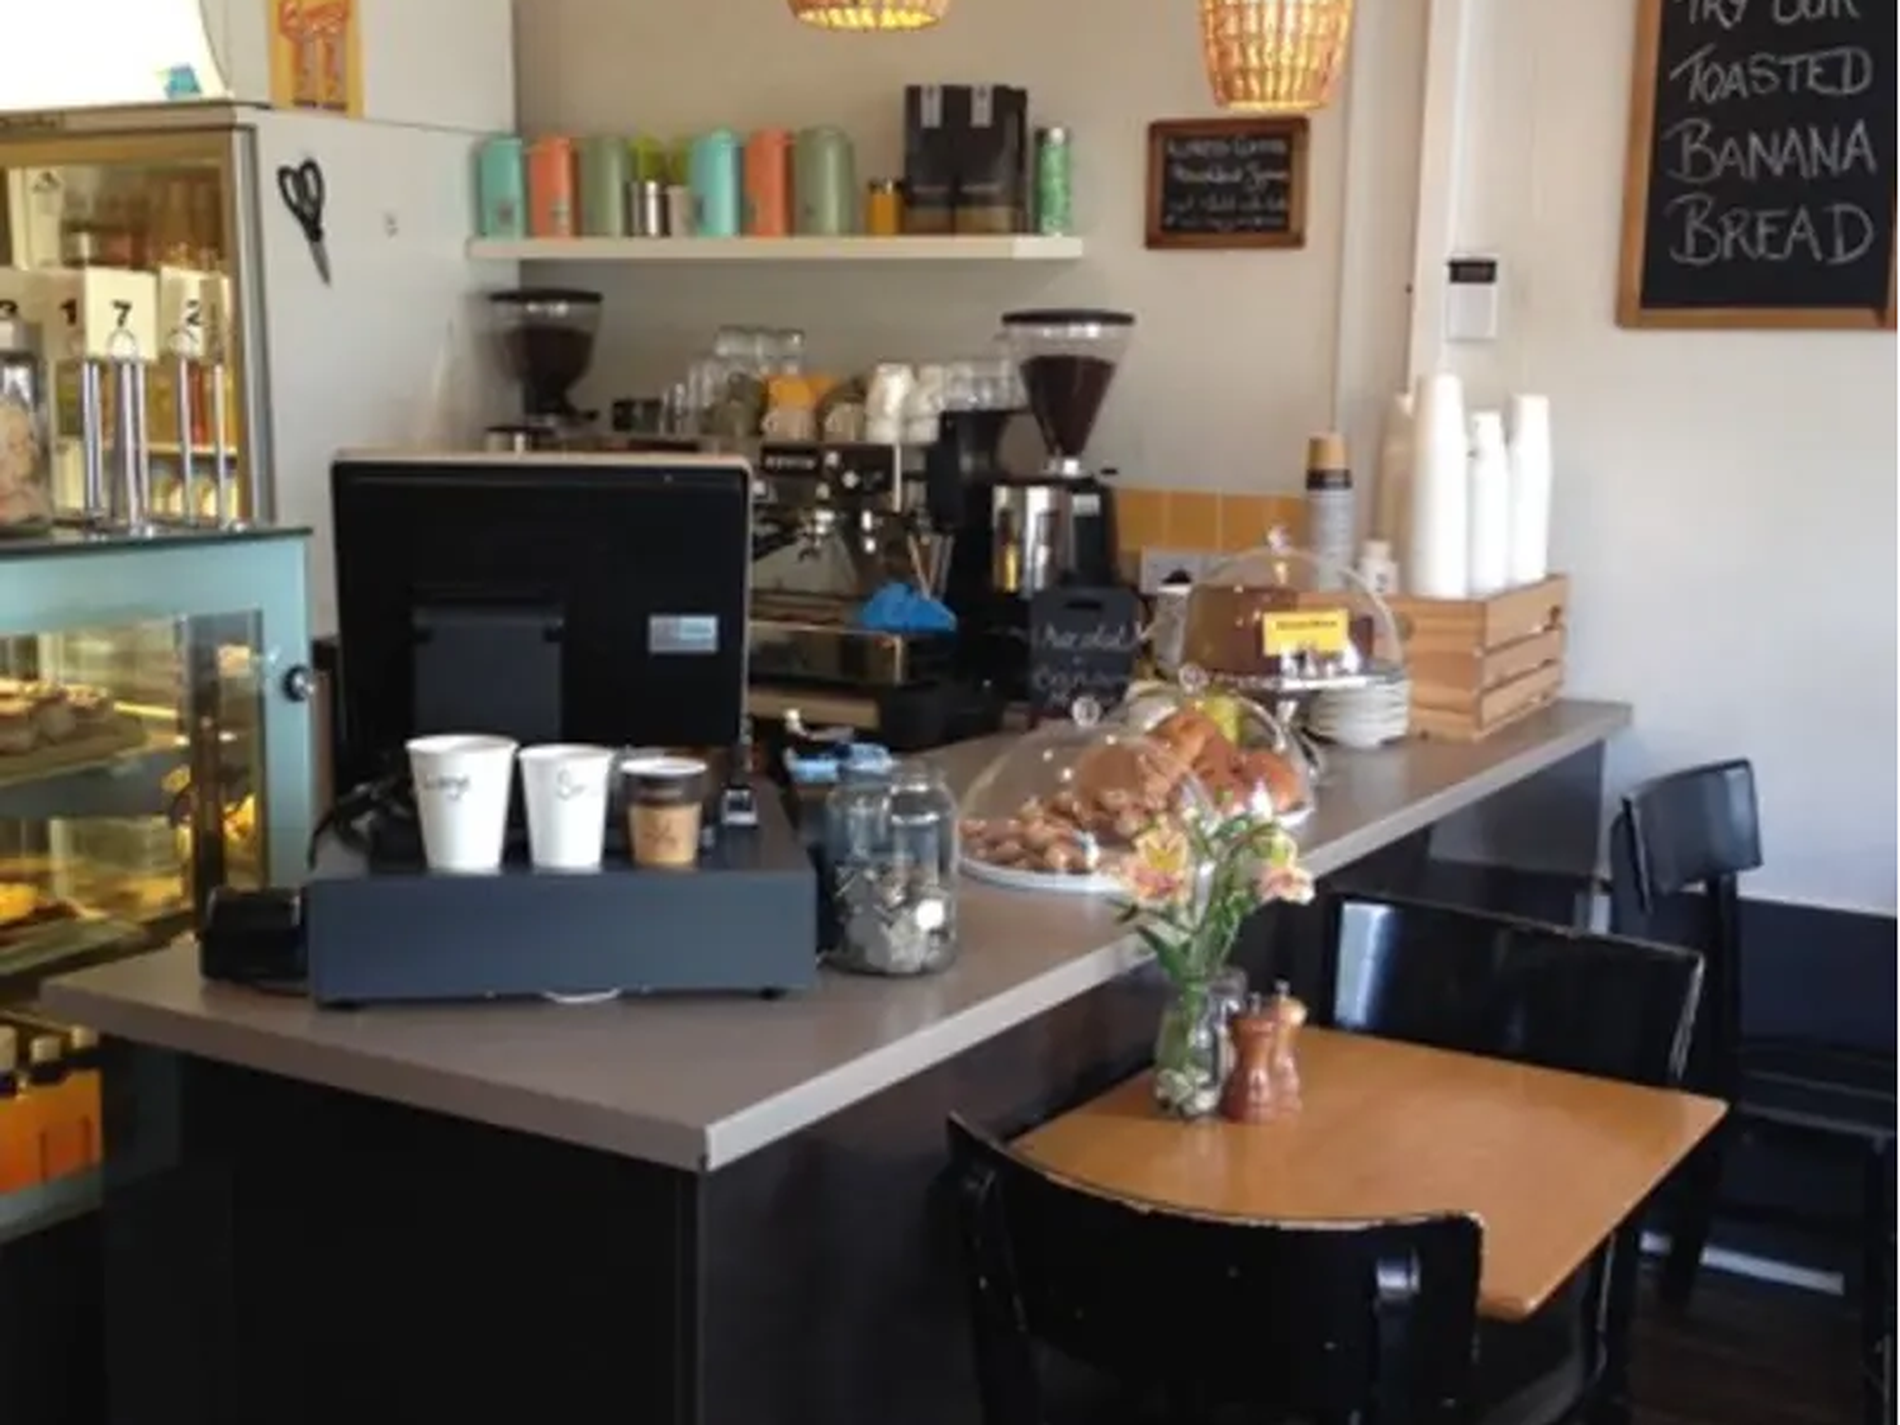 SOLD - 6 Day Trading Cafe Business For Sale in North East